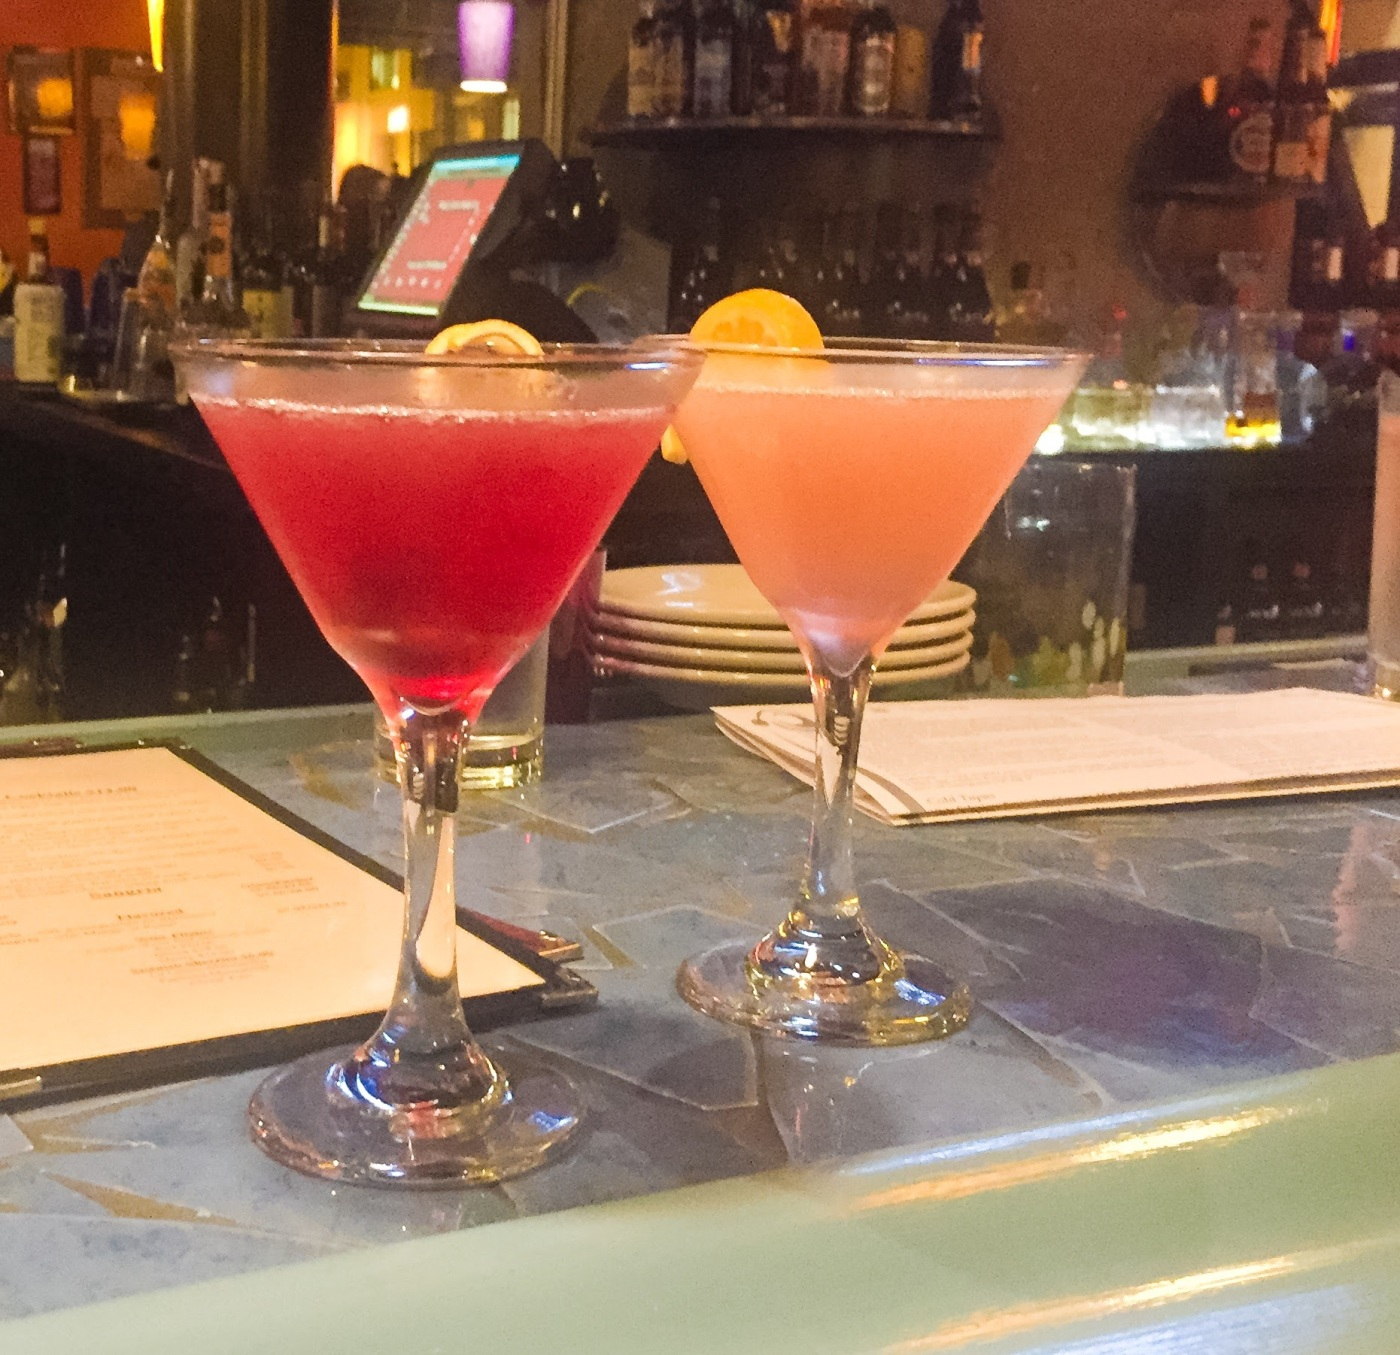 Pomegranate and passion fruit martinis at Tapas Valencia